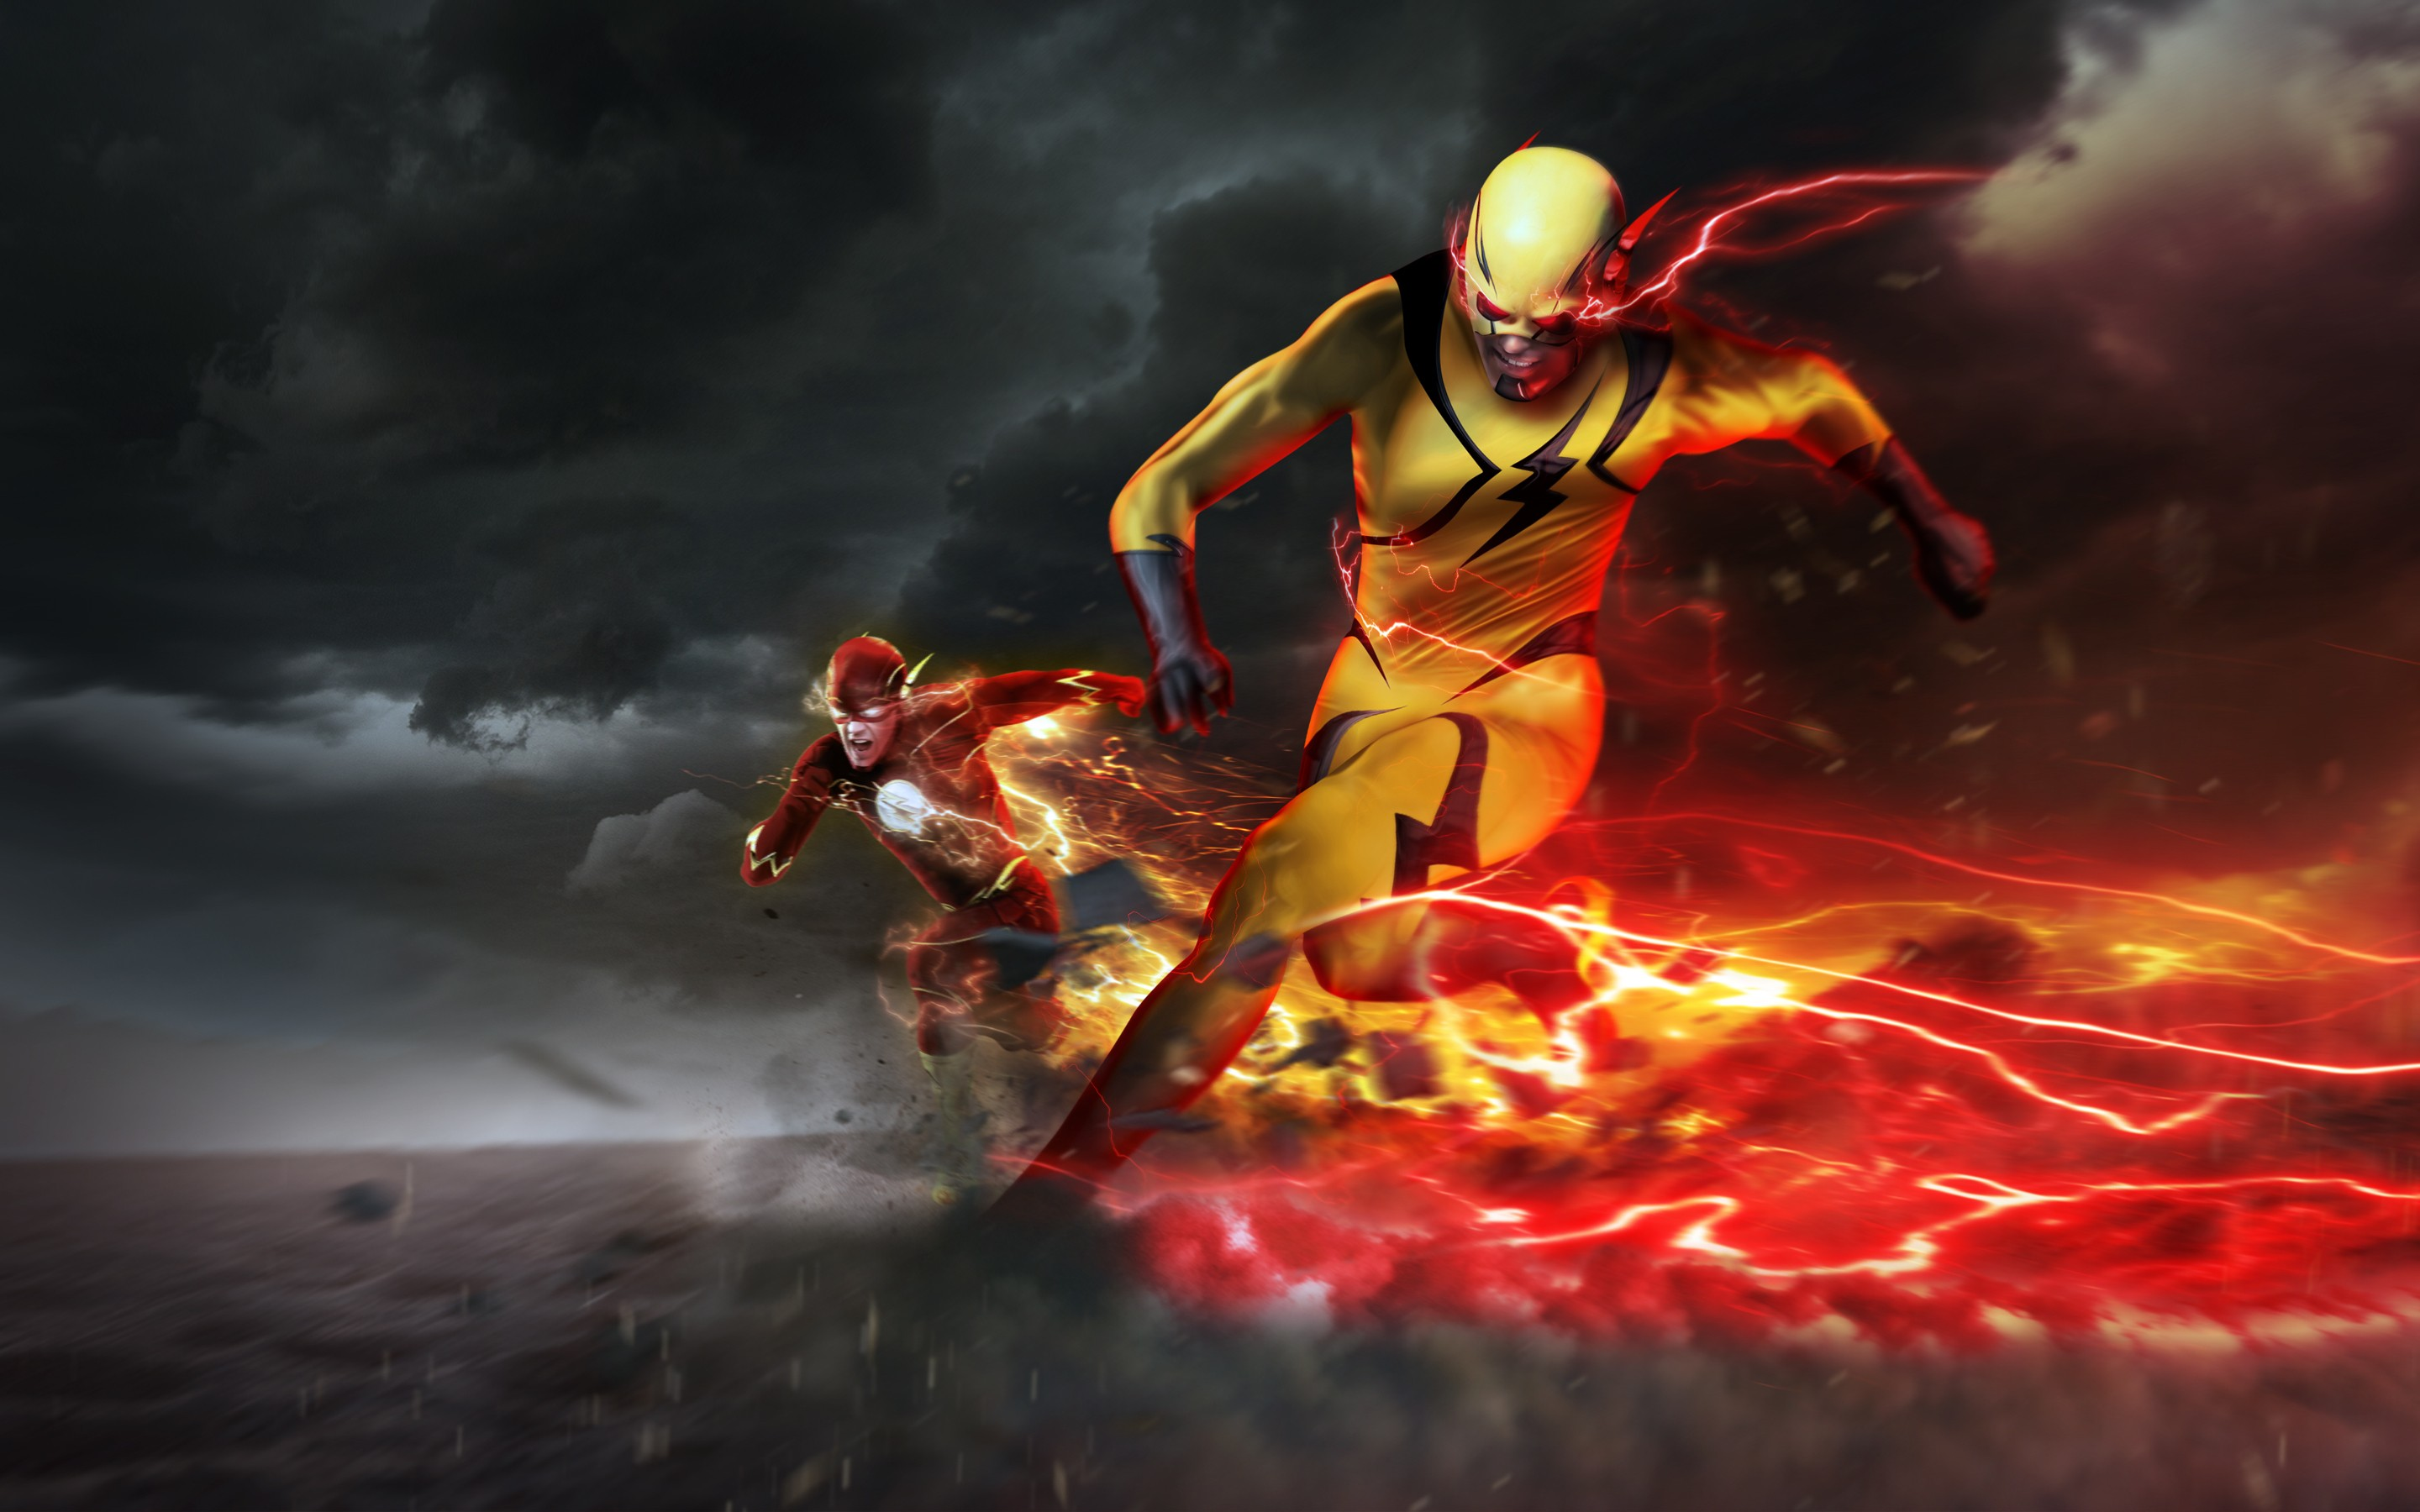 zoom in flash, hd tv shows, 4k wallpapers, images, backgrounds